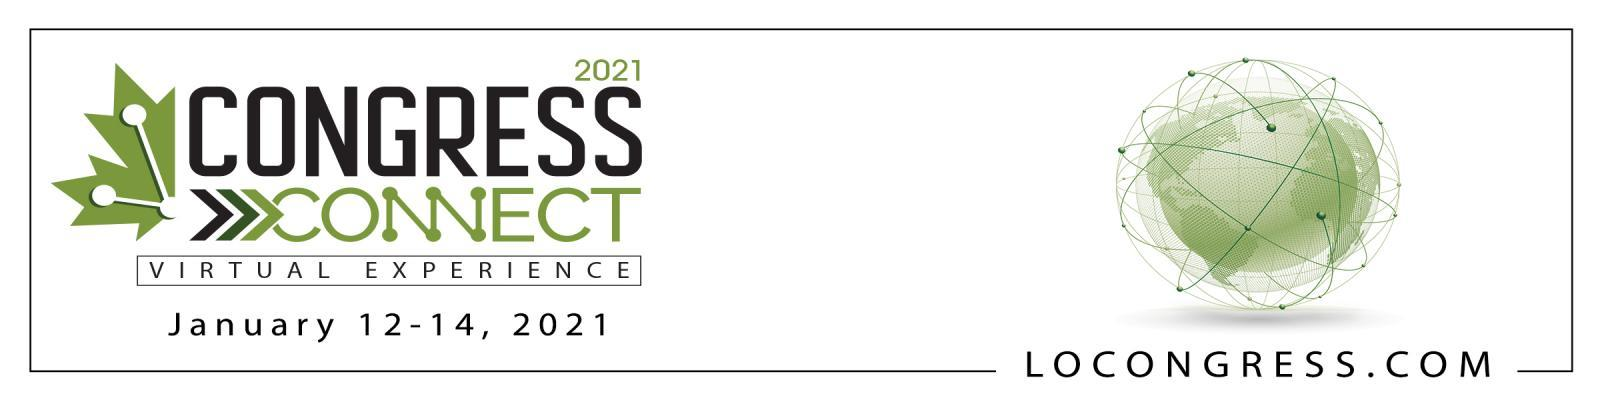 Congress Connect 2021 - staff contacts